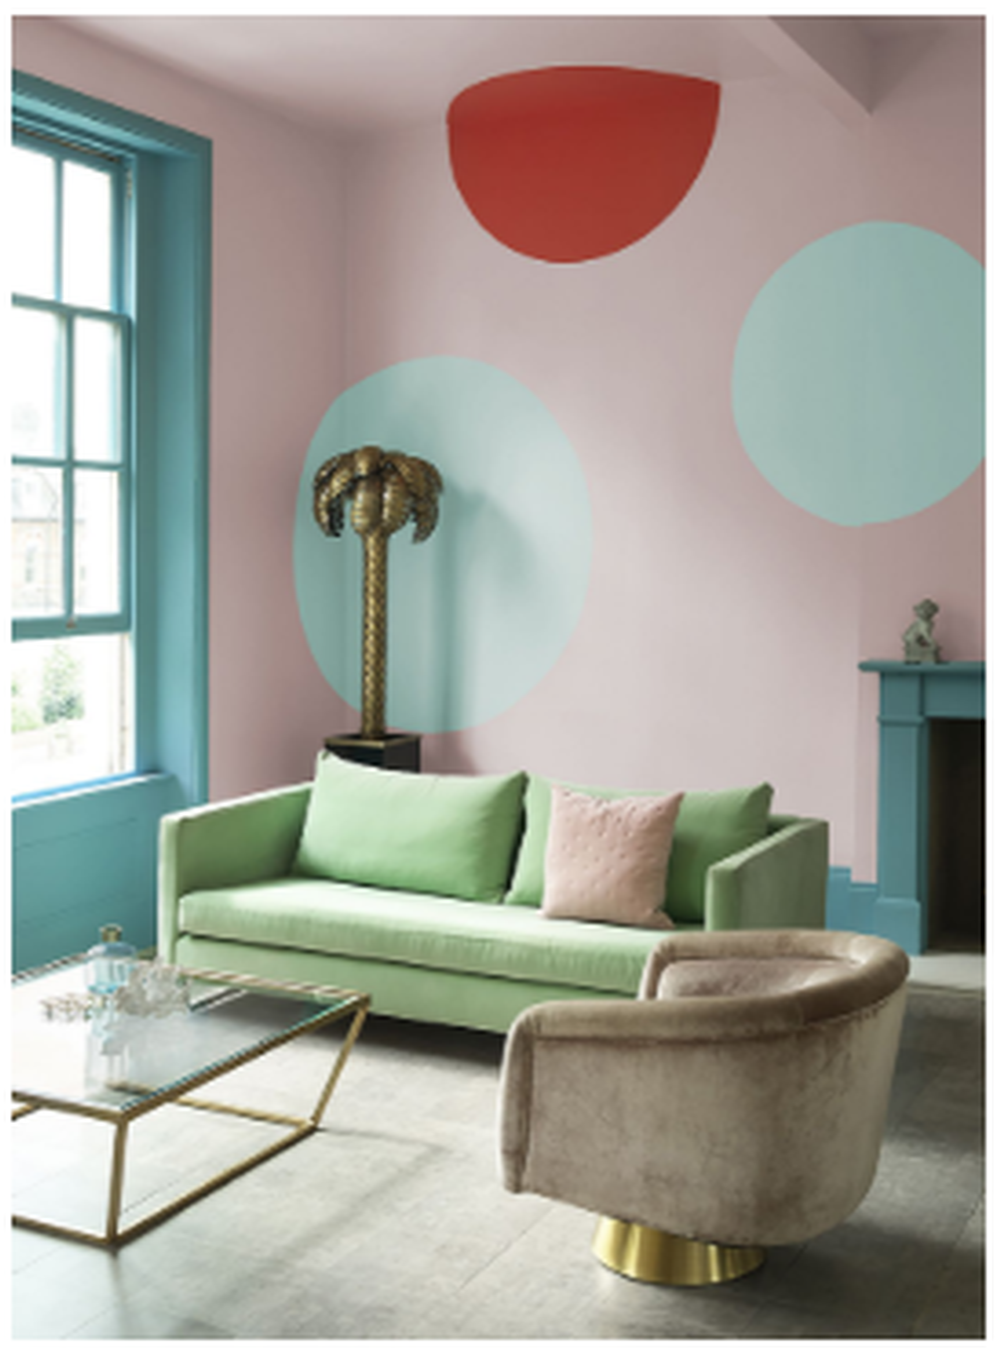 Living room paint ideas  18 colour schemes to switch up your space   Real Homes.png